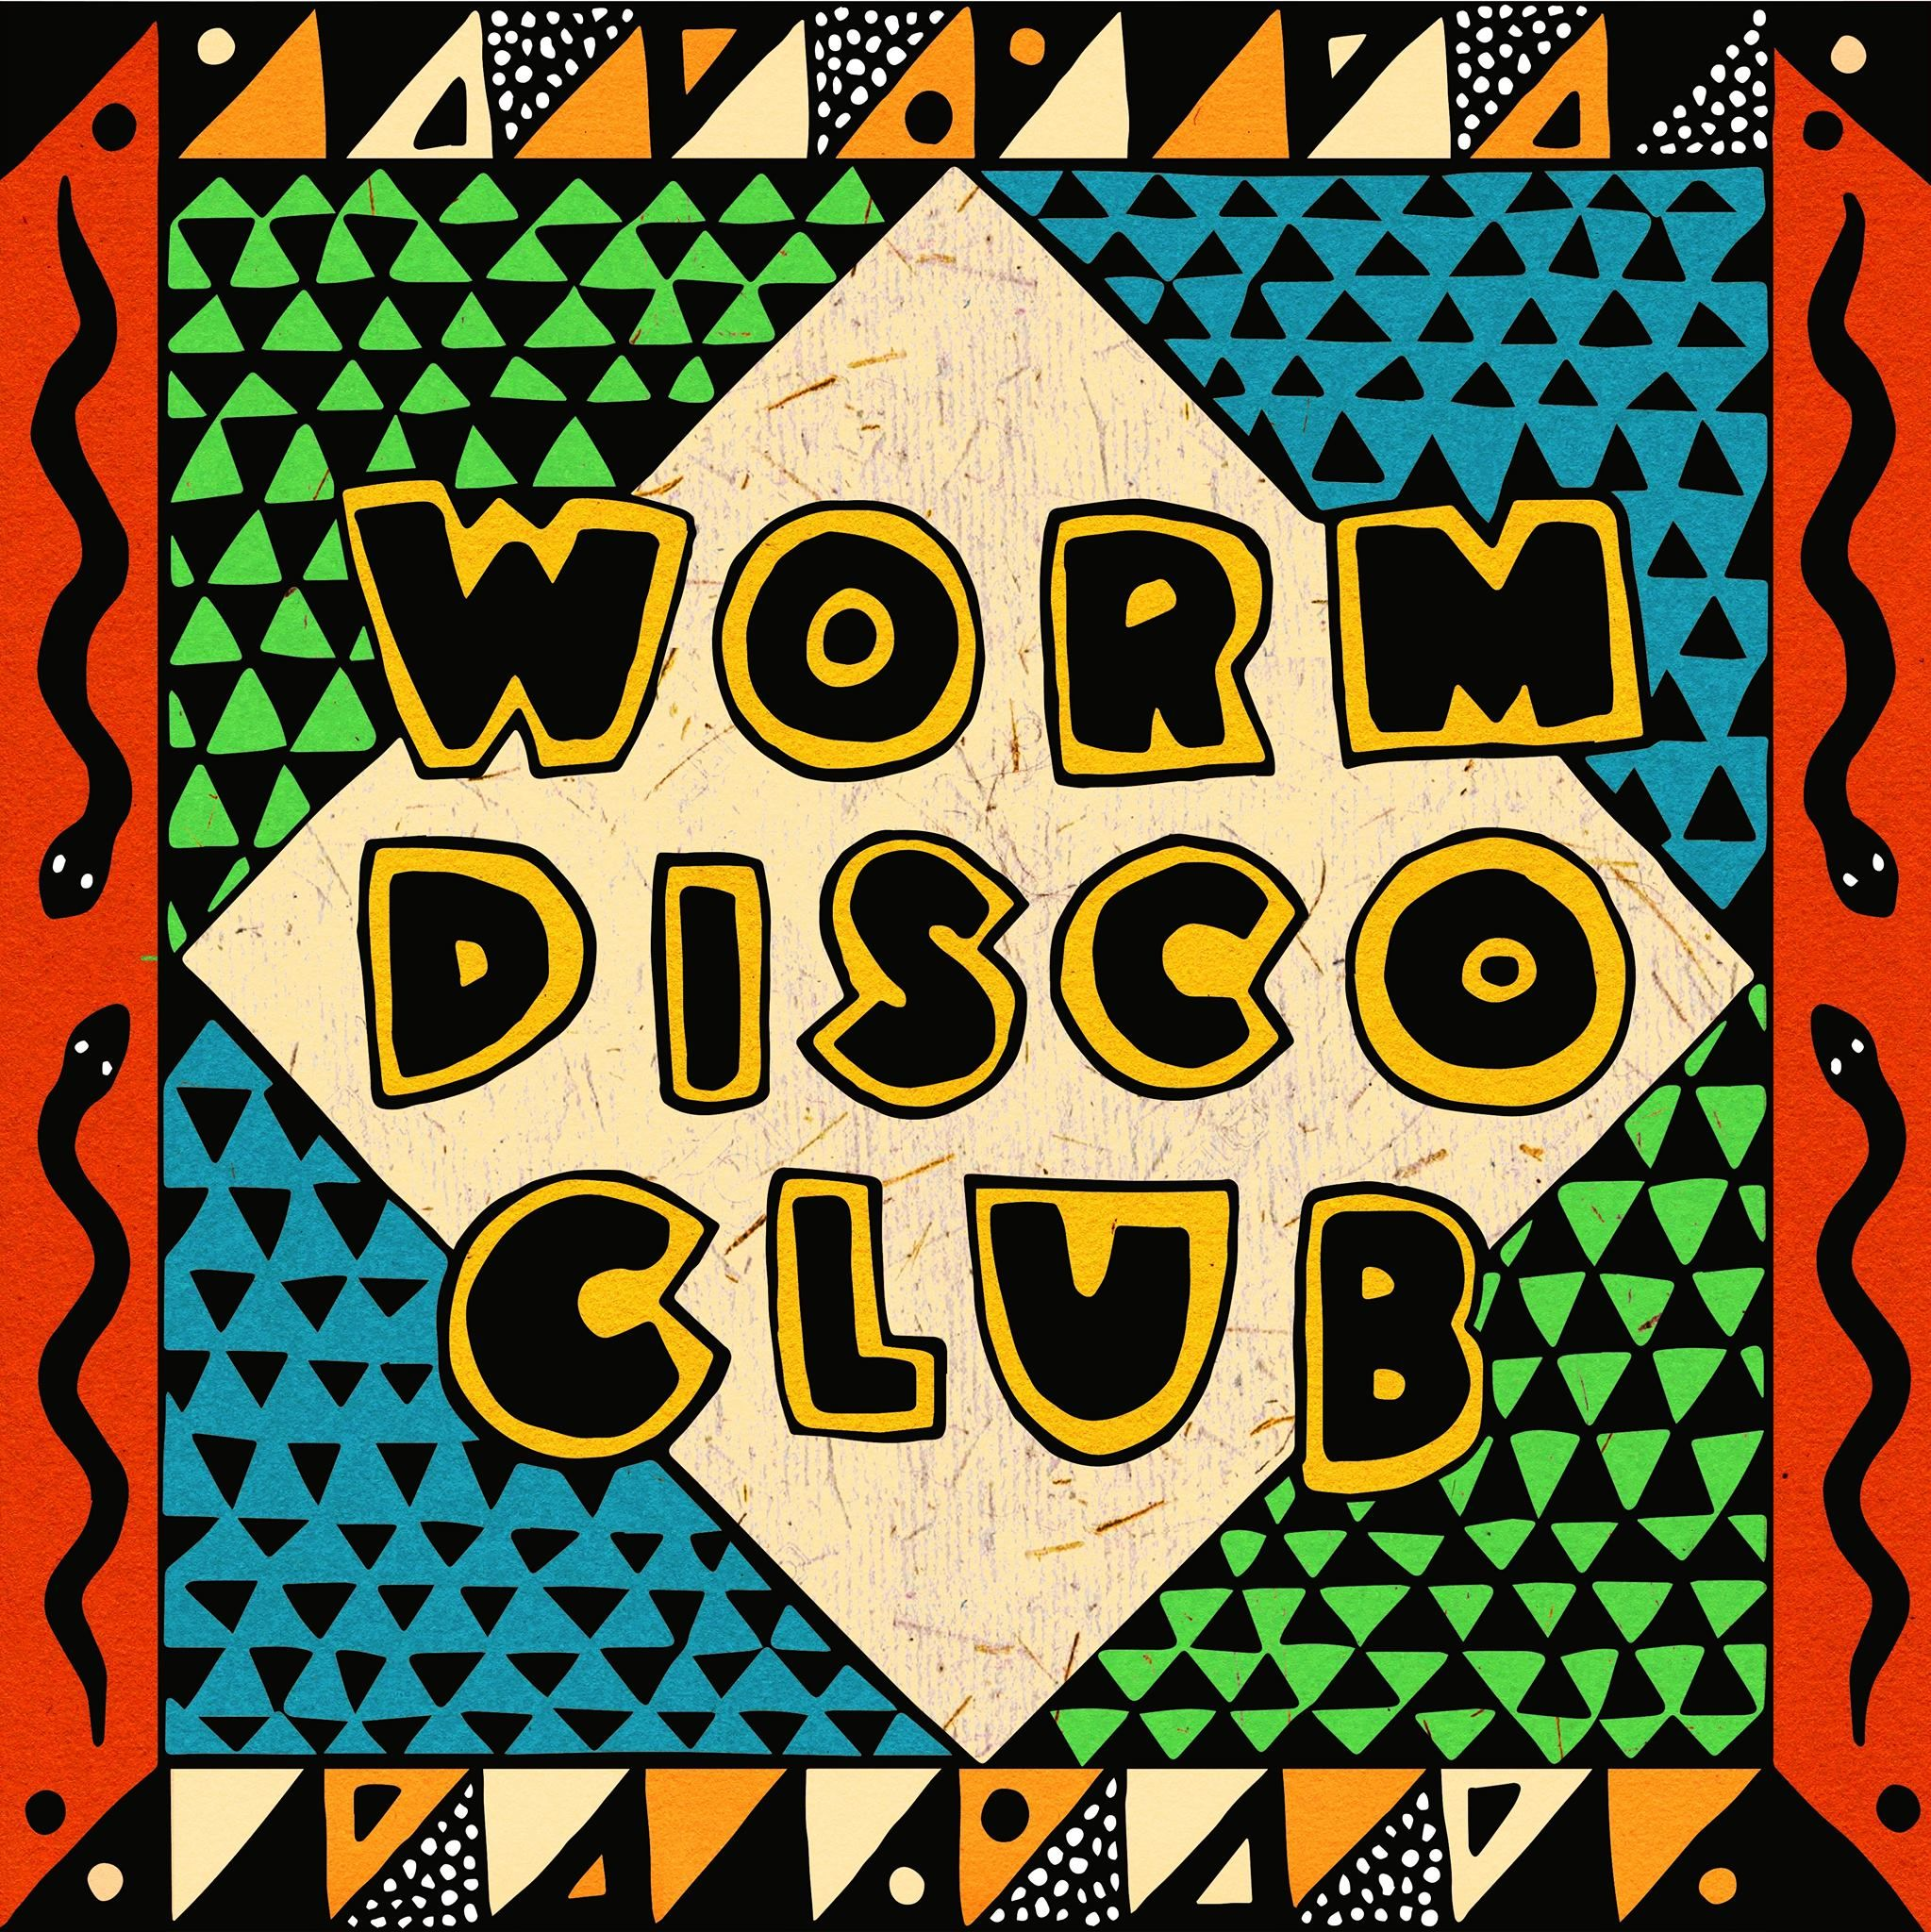 Worm Disco Club